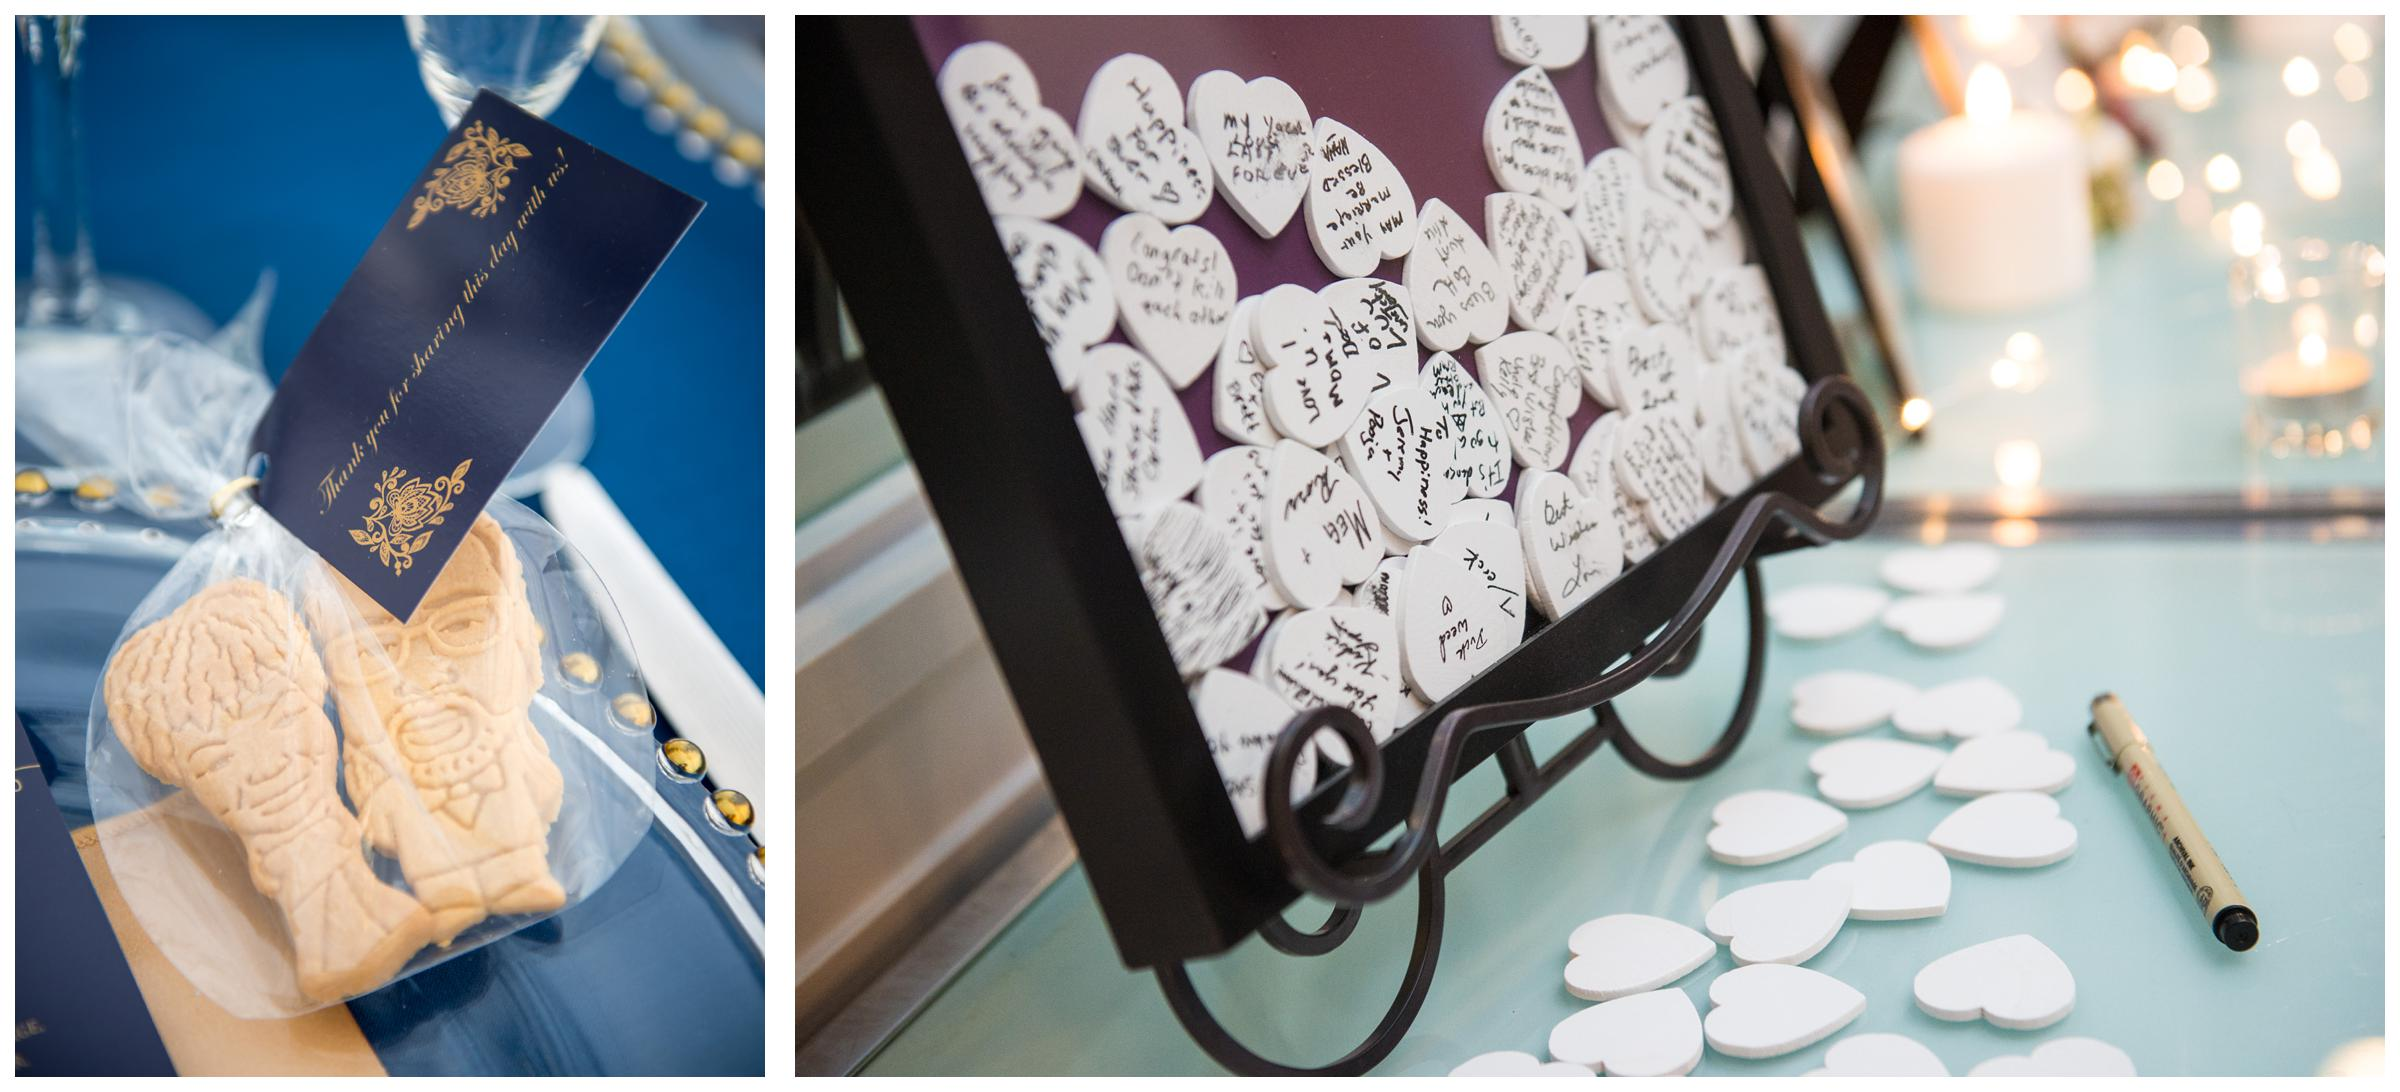 personalized caricature cookie wedding favors and shadowbox heart guestbook